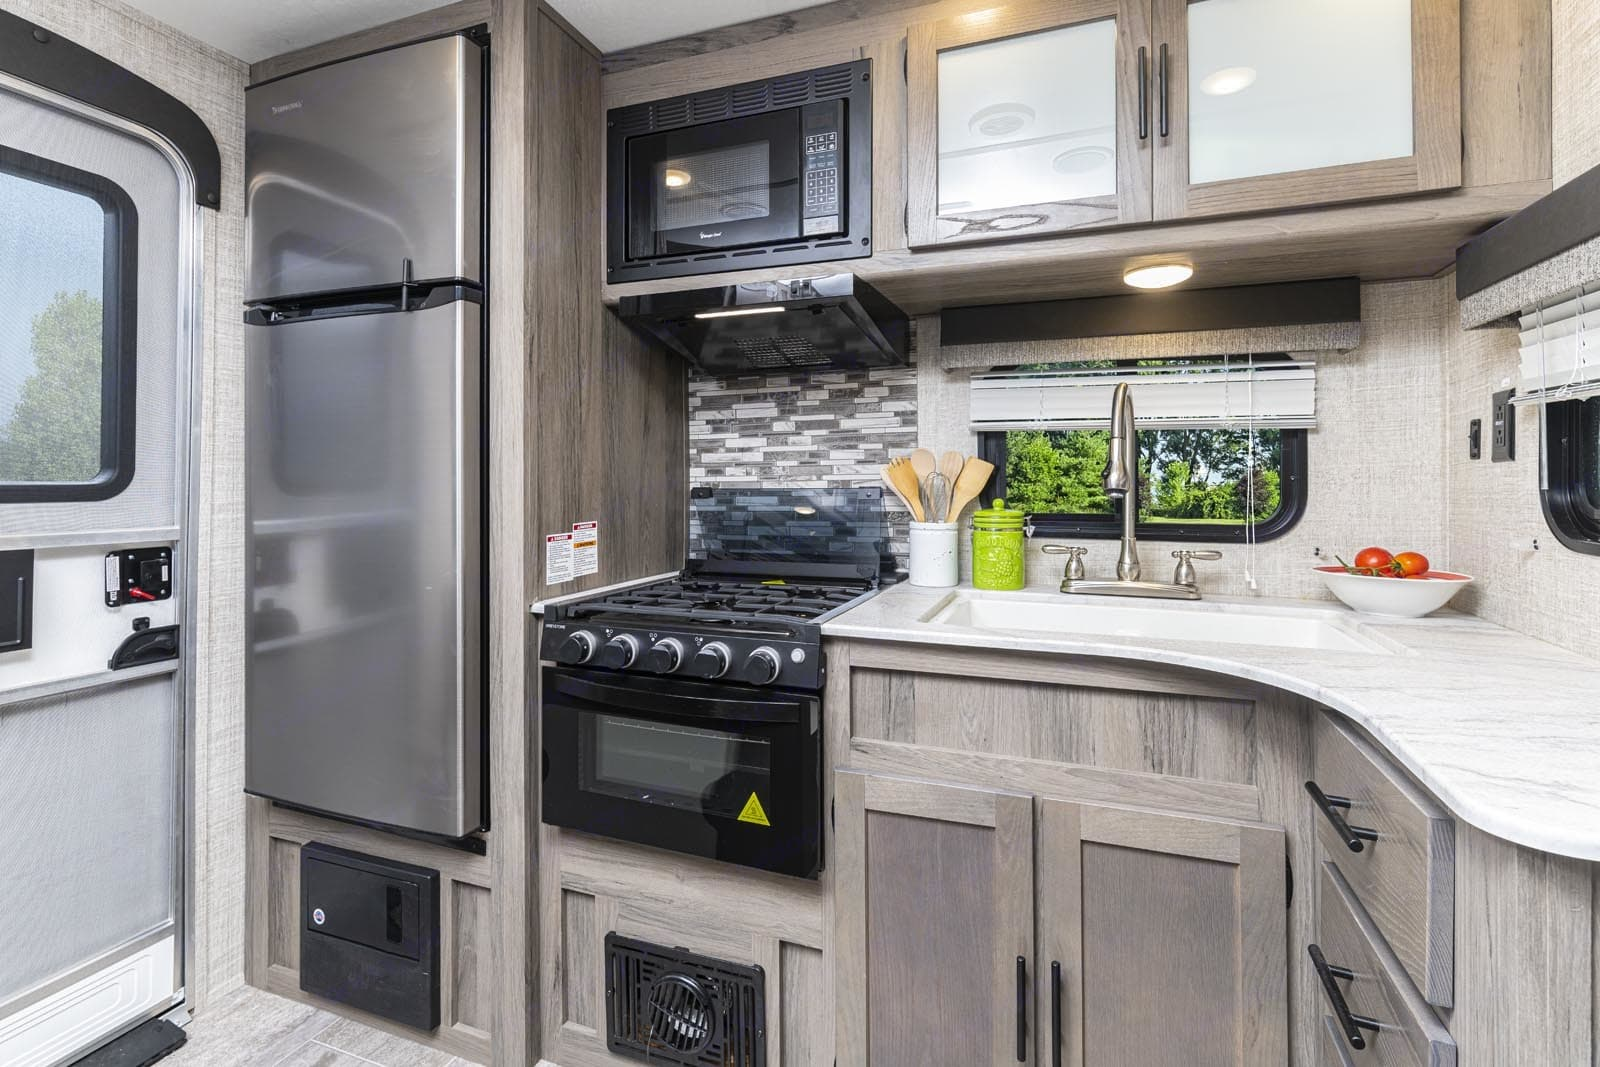 Equipped with 12v fridge, freezer, 3 burner gas stove top, gas oven, toaster, coffee maker.. Gulf Stream Amerilite 2021